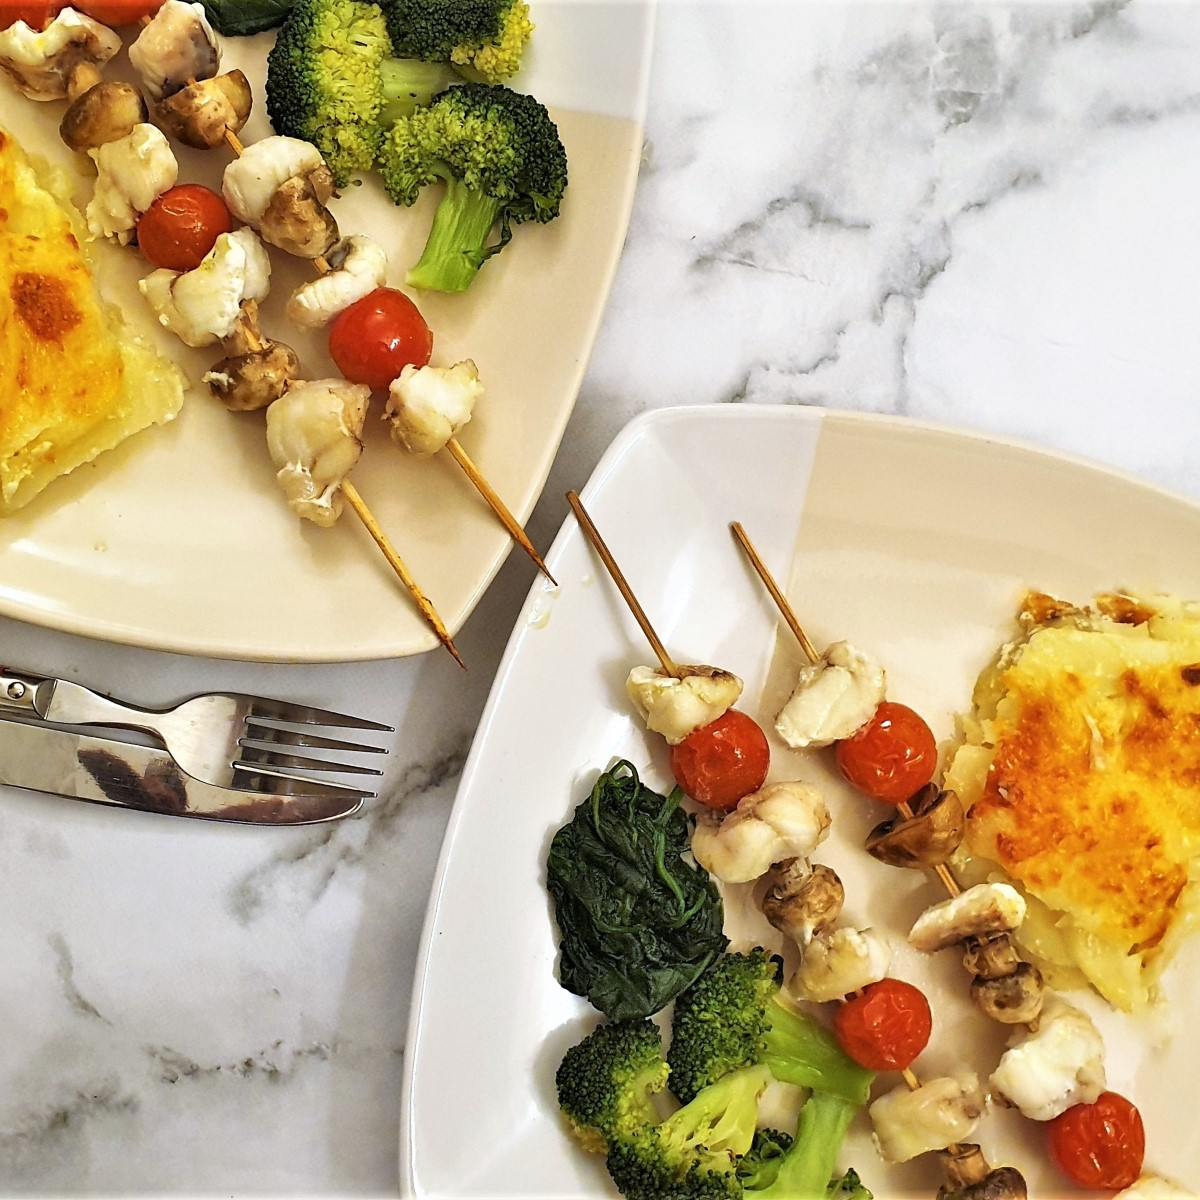 Two plates with monkfish kebabs, vegetables and potatoes.